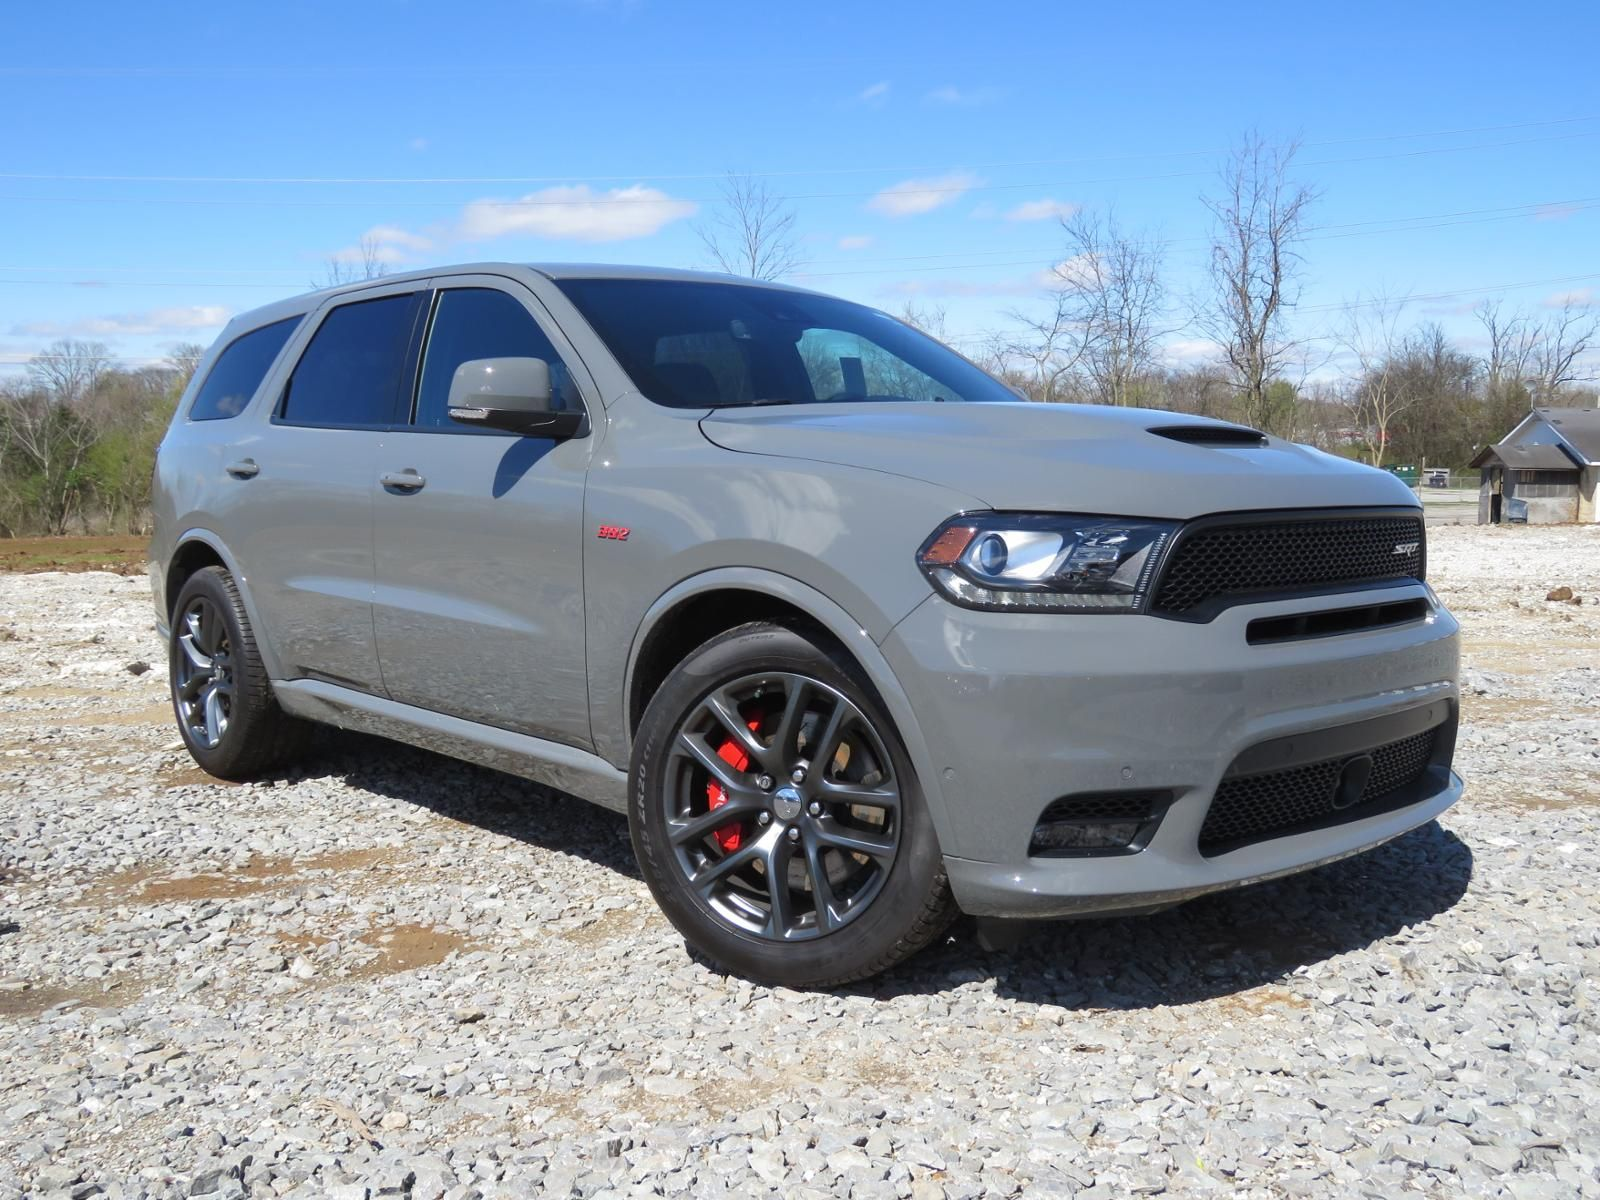 New 2019 Dodge Durango Srt 4d Sport Utility For Sale C Dodge Srt8 Dodge Durango Dodge Charger Daytona